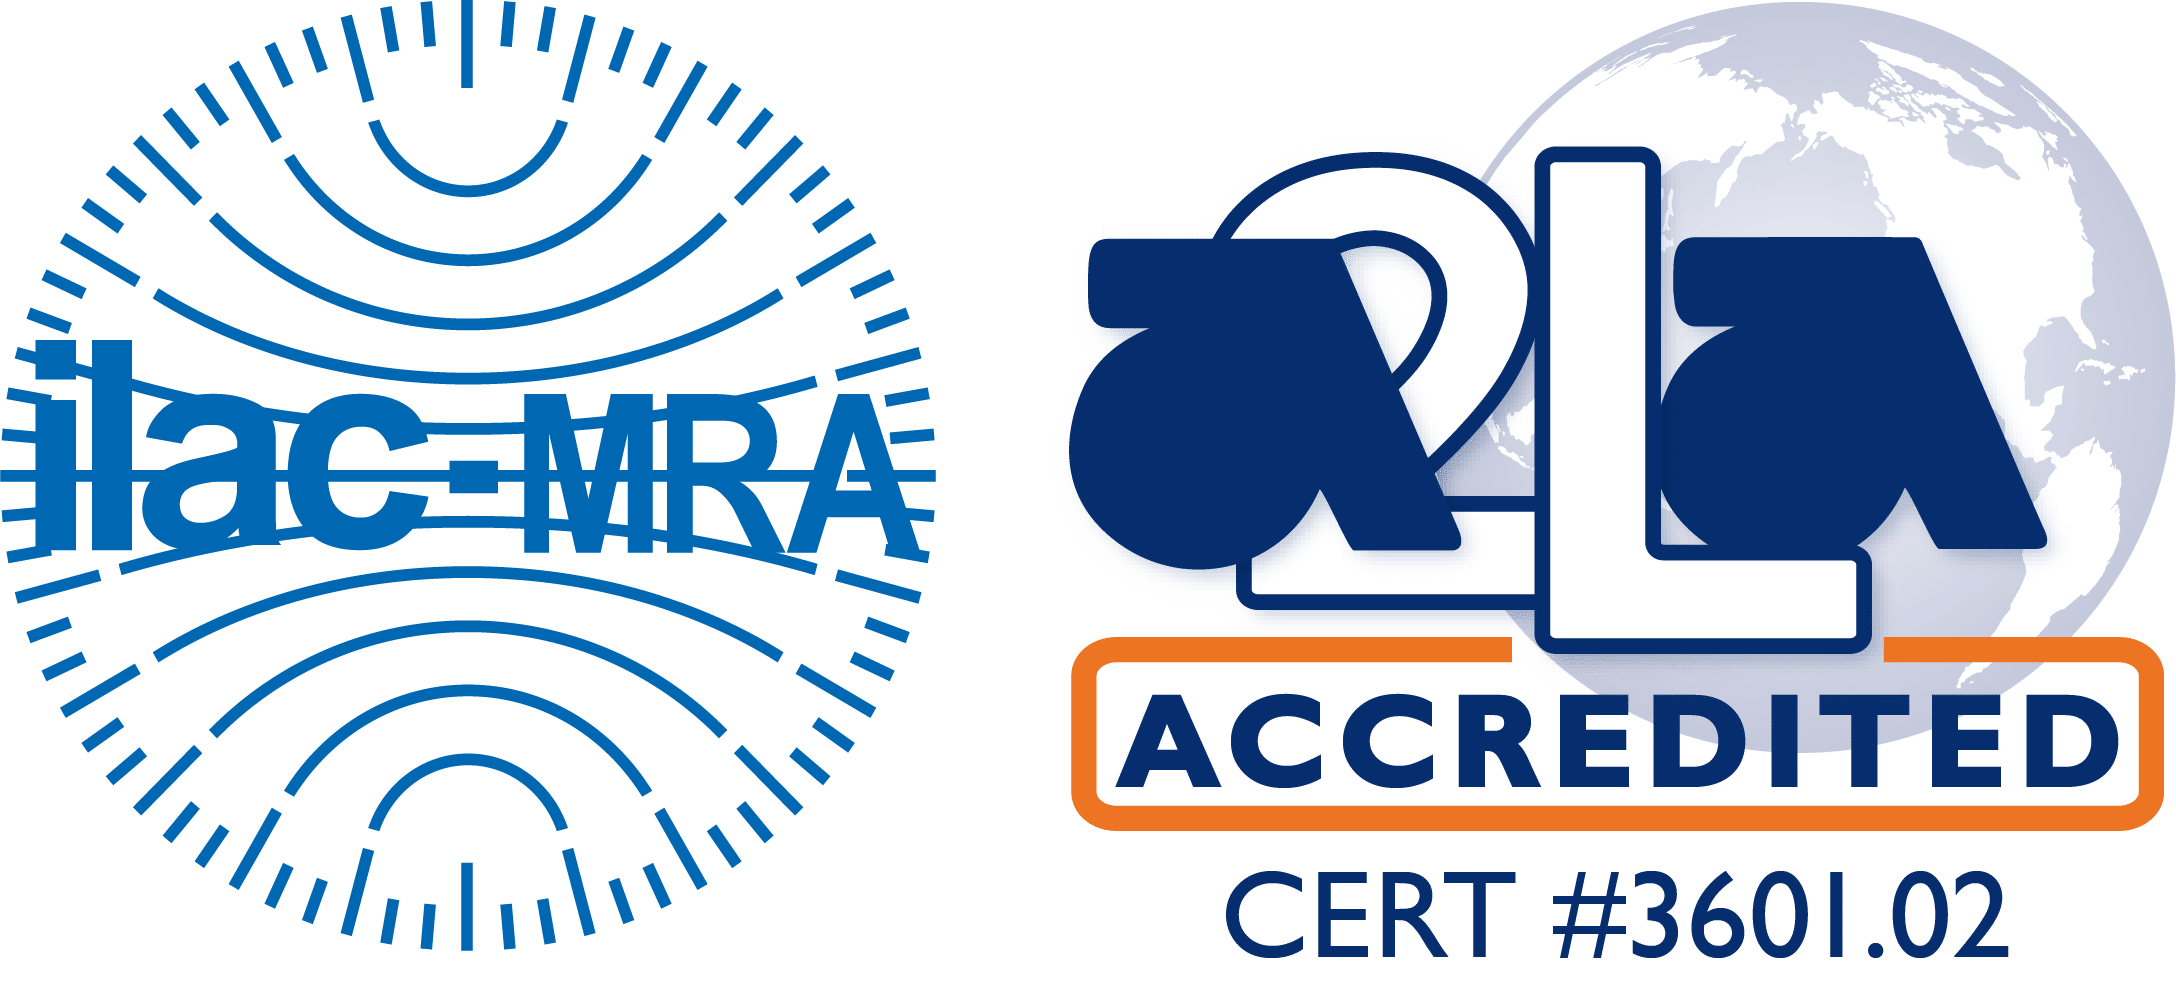 ILAC MRA-A2LA Accredited Symbol 3601.02 Bossier City